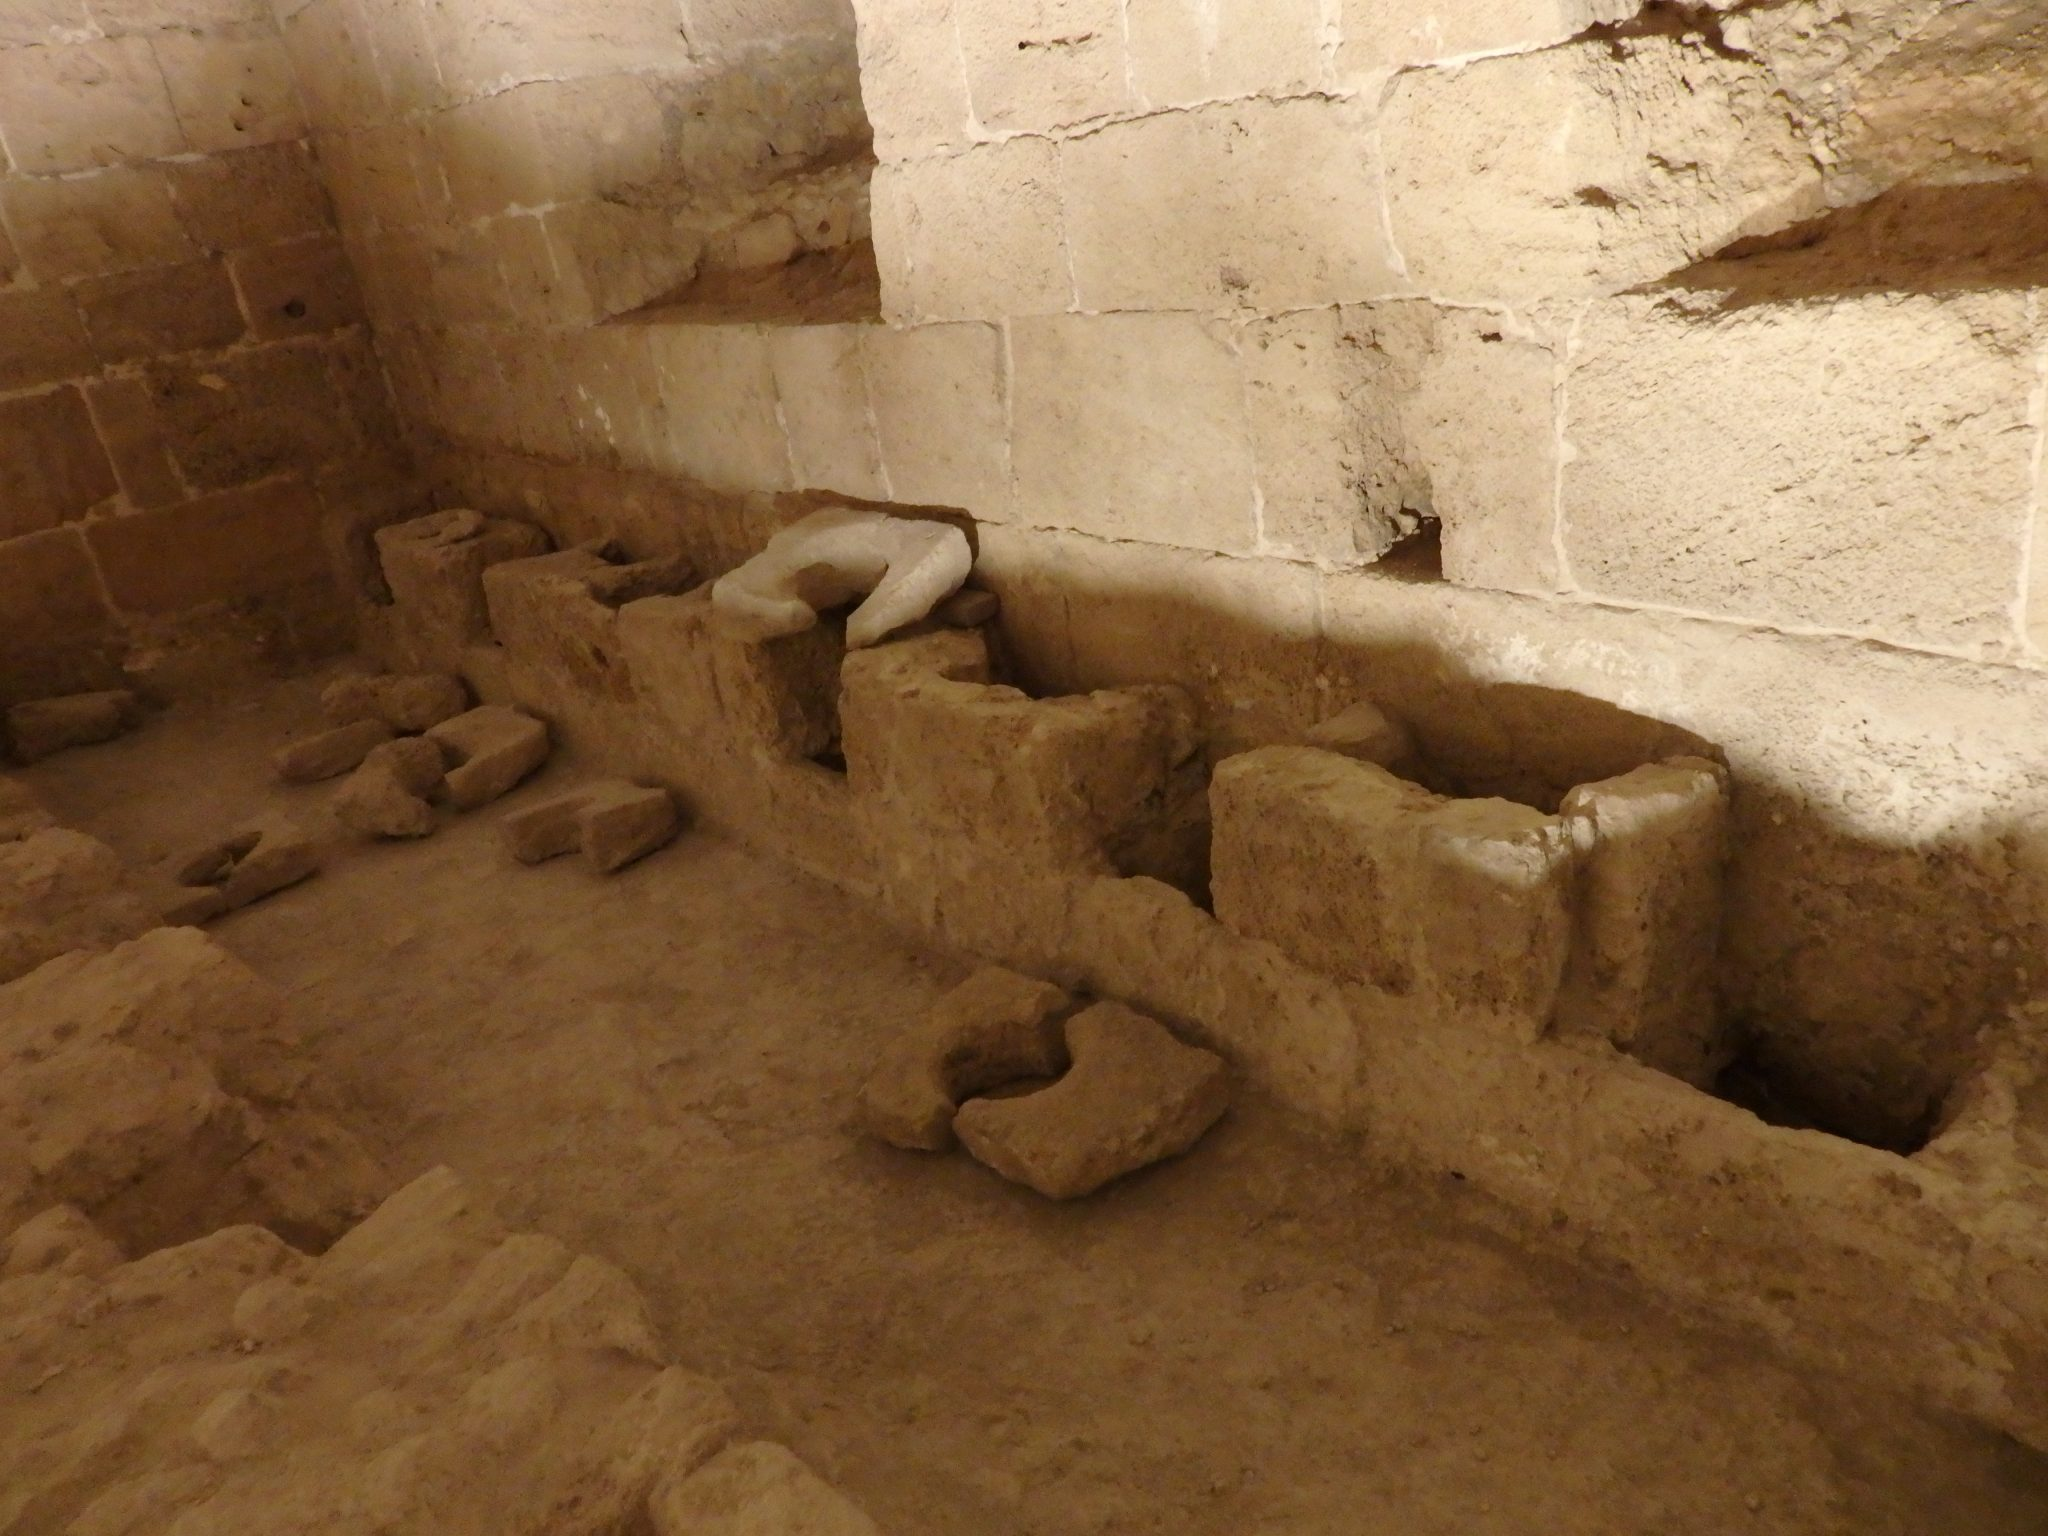 The Knights Hospitallers even provided public toilets, with a sewage system of sorts.